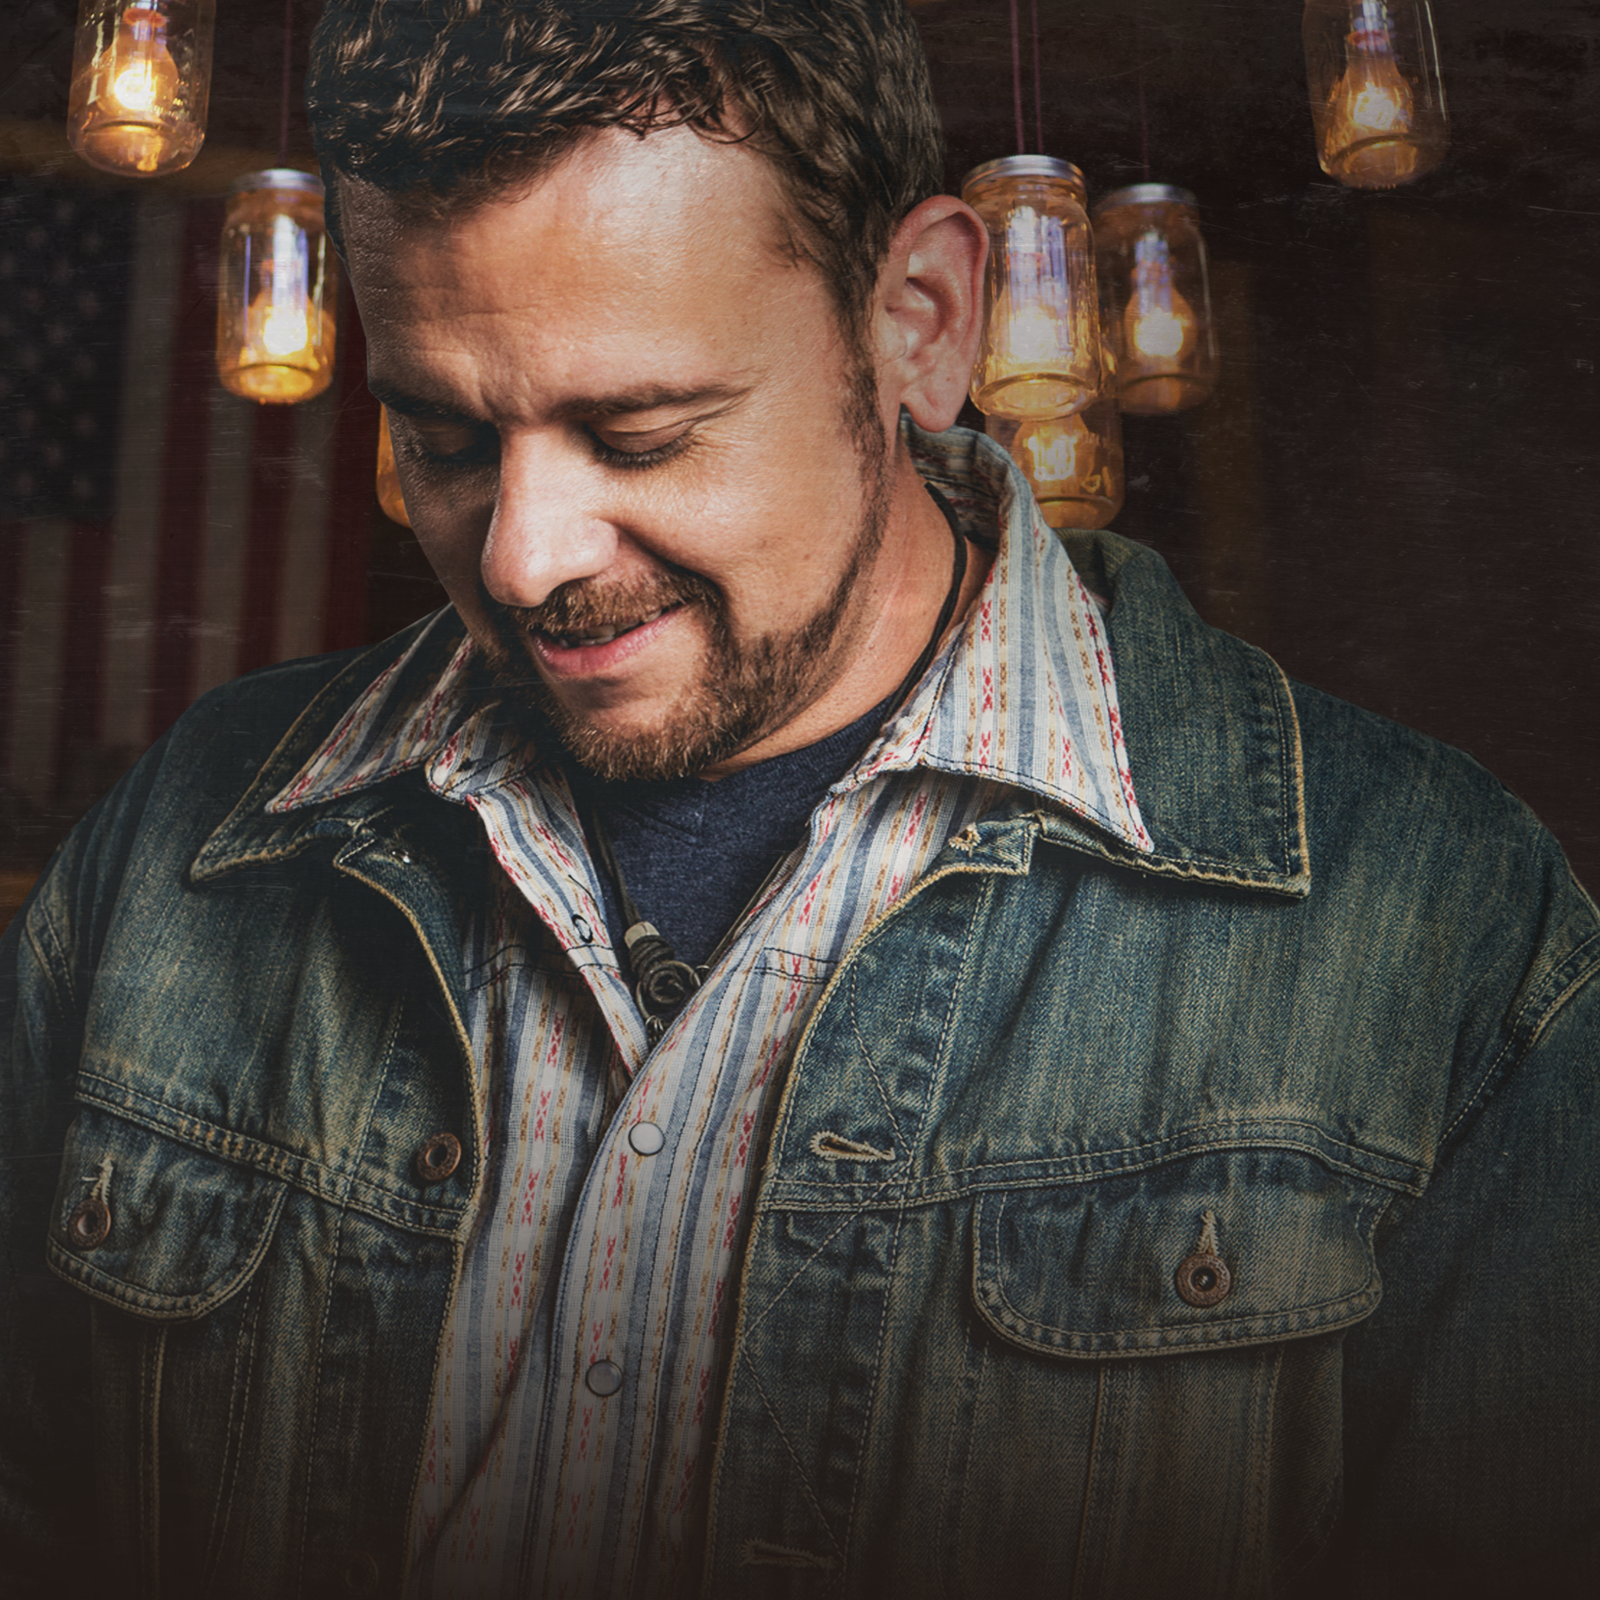 The New Year calls for new music from country artist, Tim Elliott